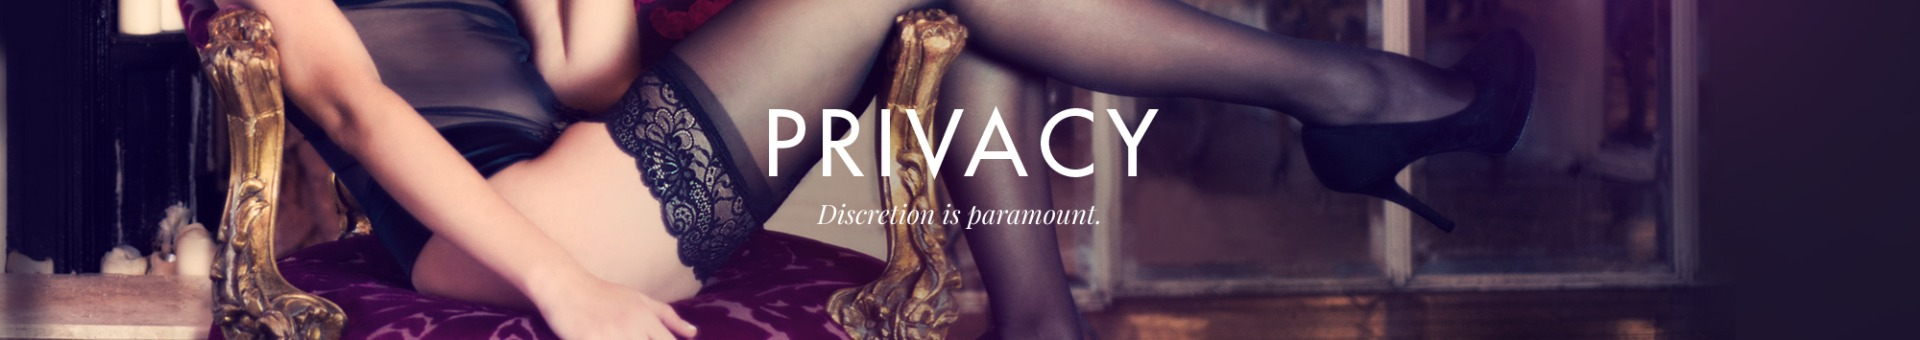 Privacy Policy | Dolci Follie